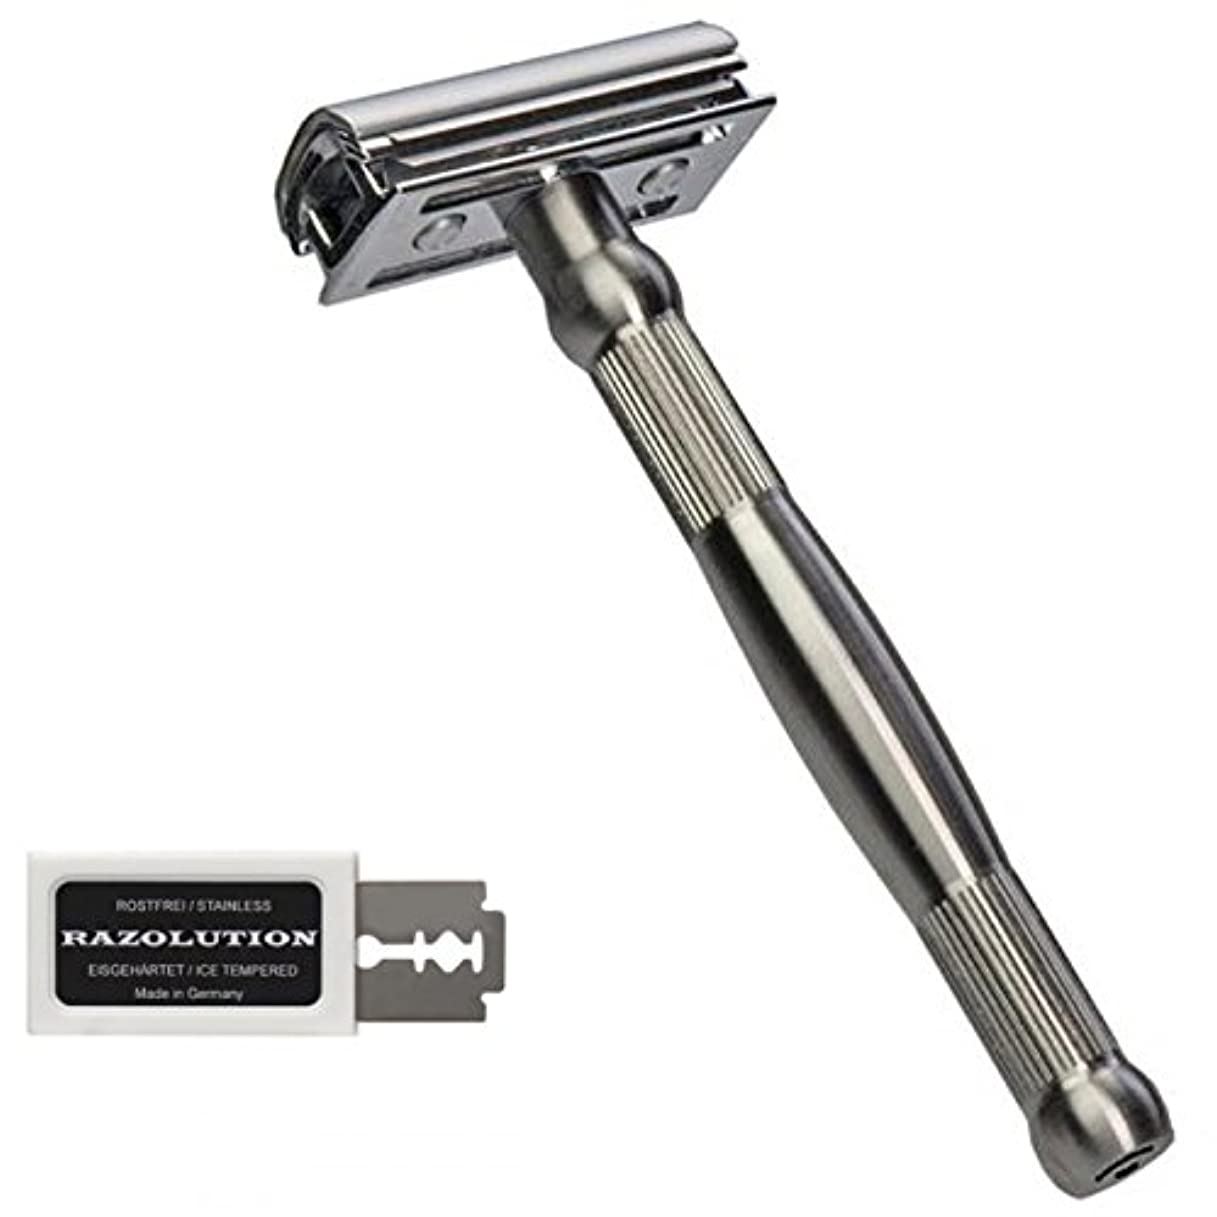 アラスカパーク仮称RAZOLUTION 4Edge Safety razor, stainless steel handle